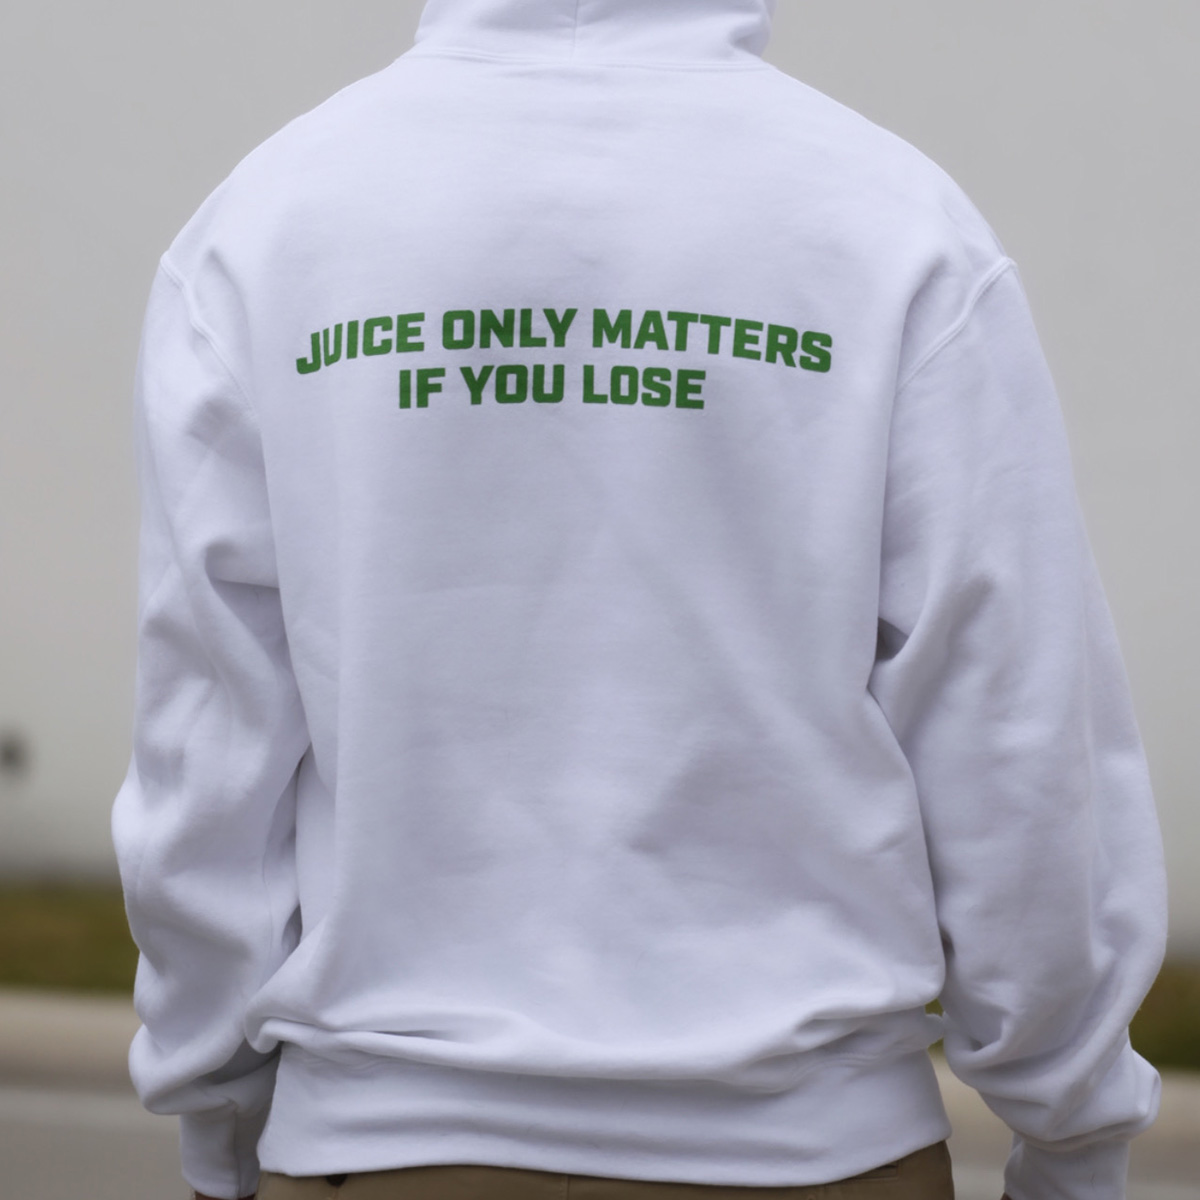 Juice only matters if you lose - white hooded sweatshirt - back